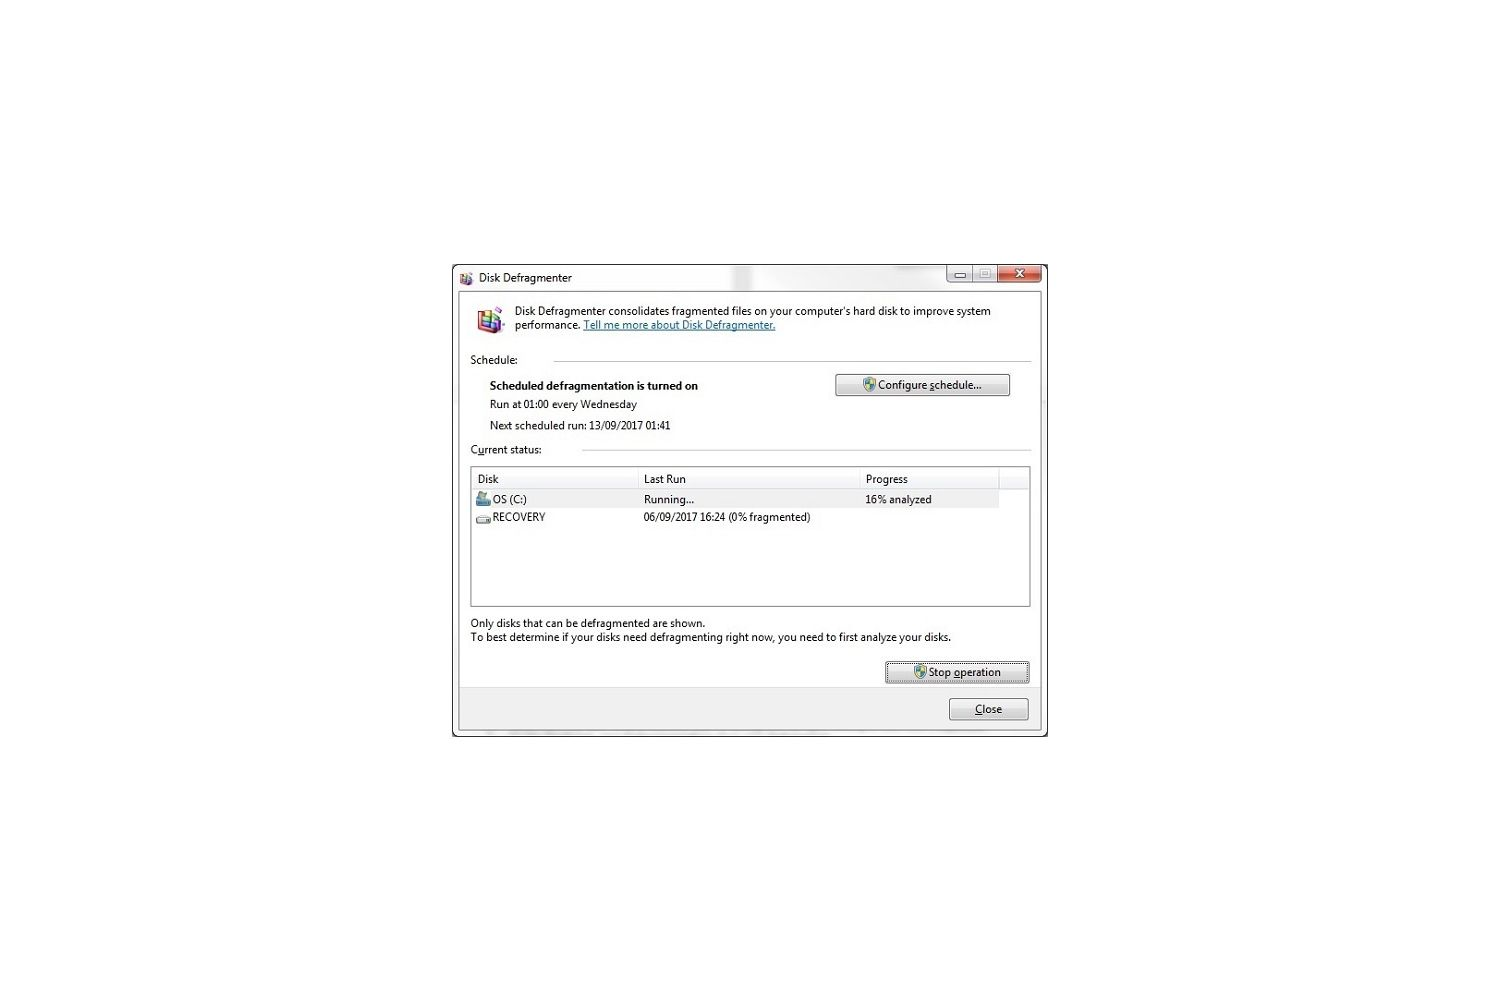 Windows 7 Disk Defragmenter pop-up window reports current analysis status of a disk analysis report